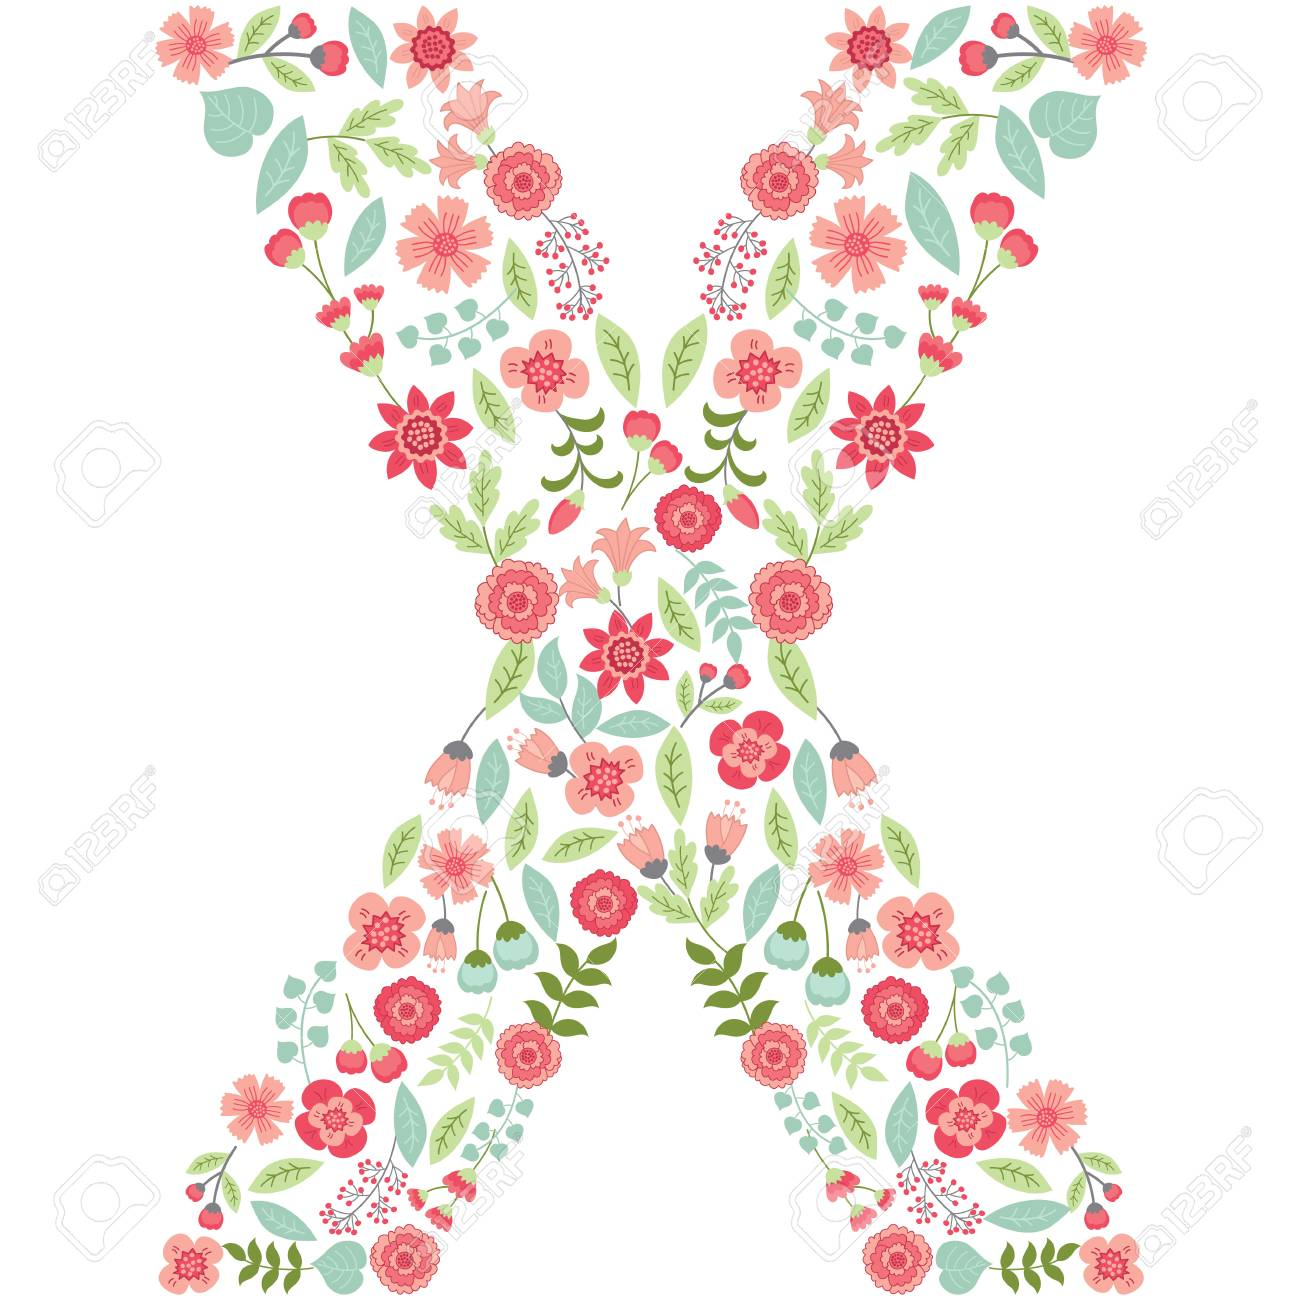 vector floral letter x the capital letter x is made of floral